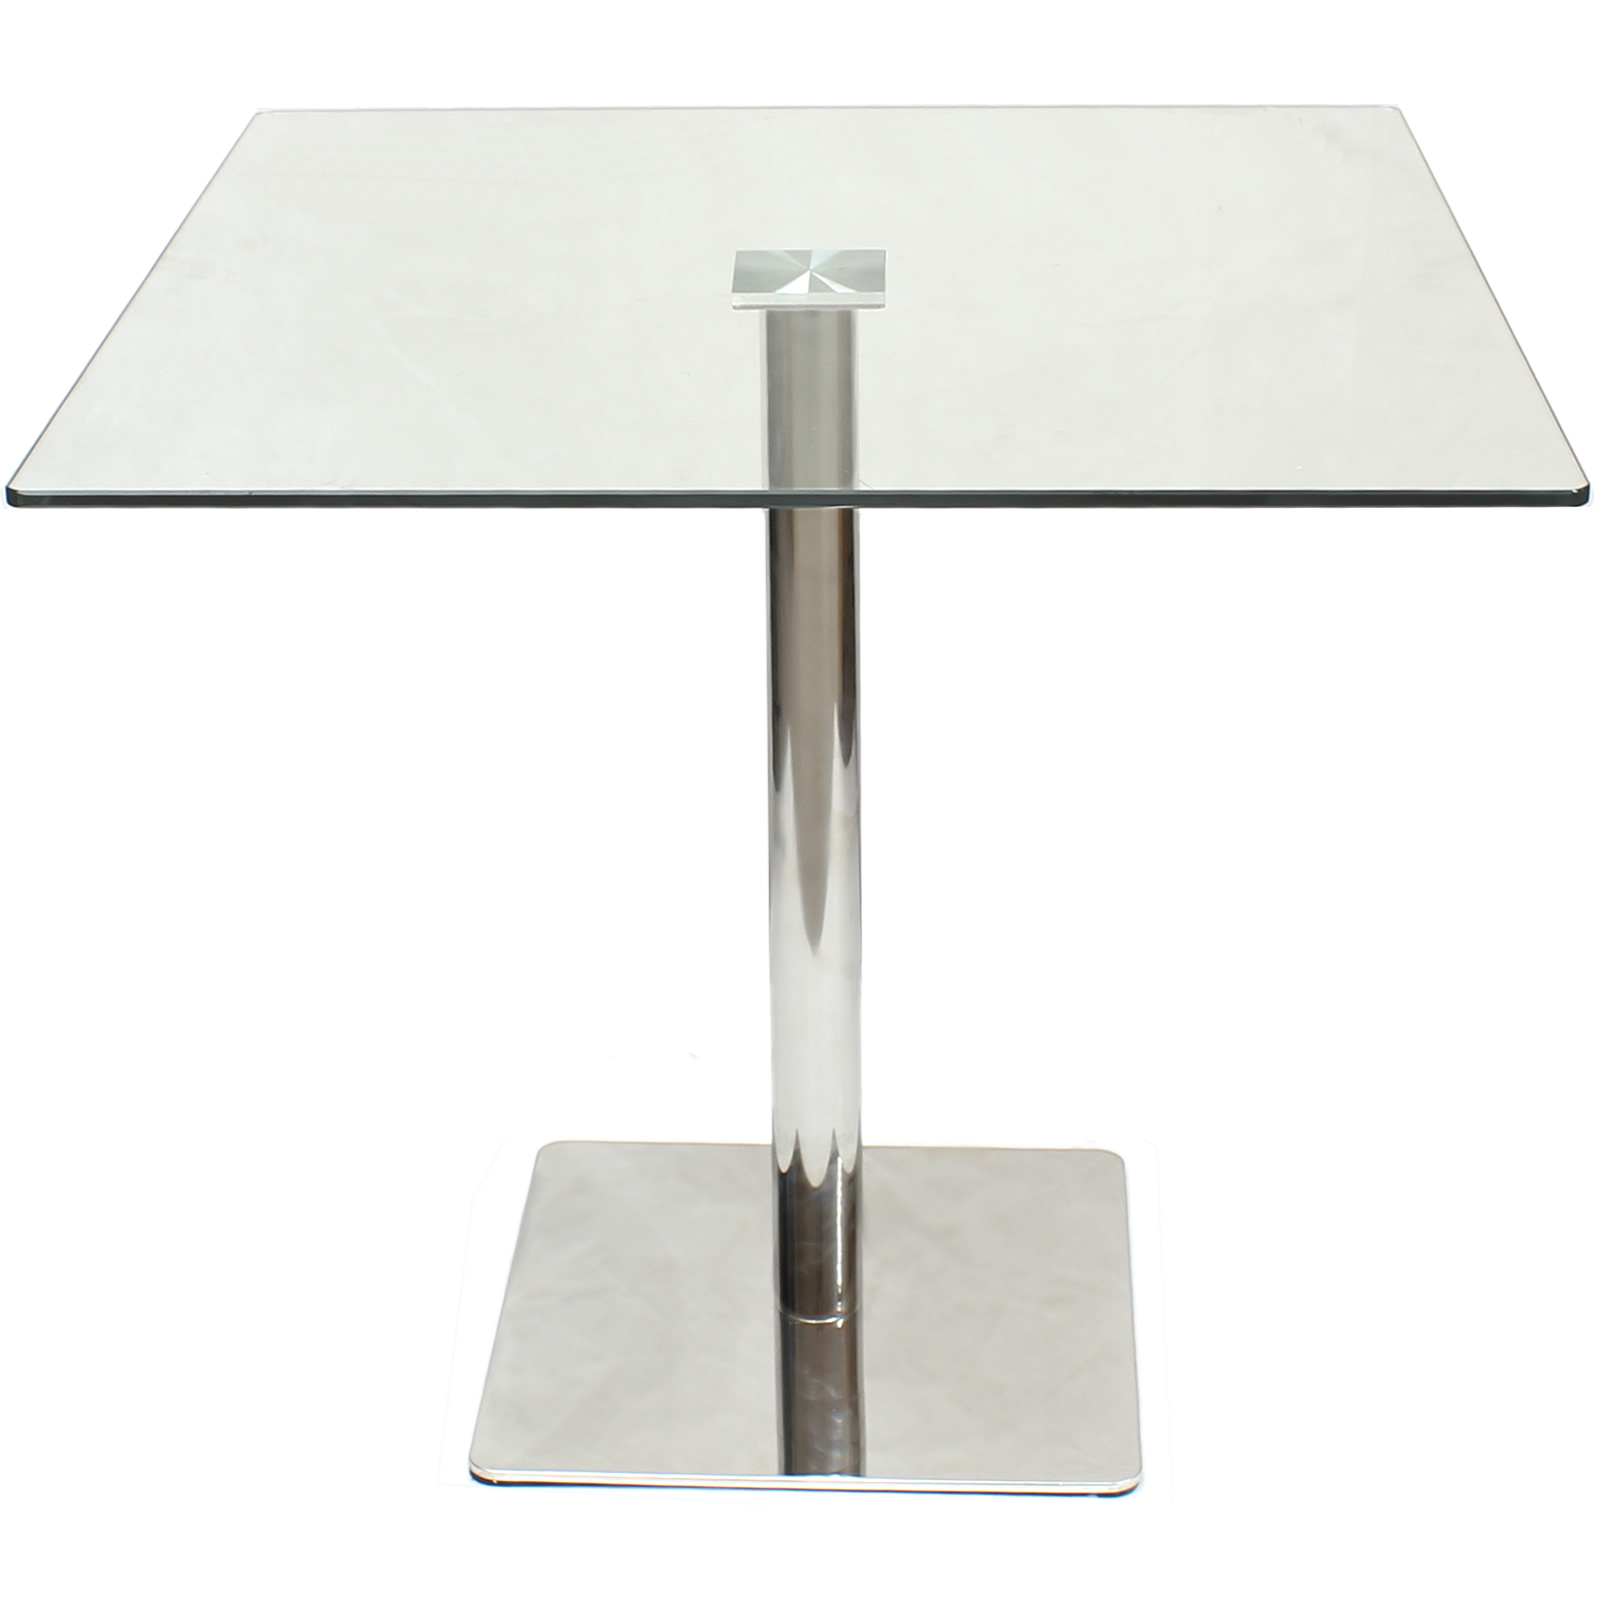 large square clear glass dining  bistro table bar  cafe style  breakfast  kitchen